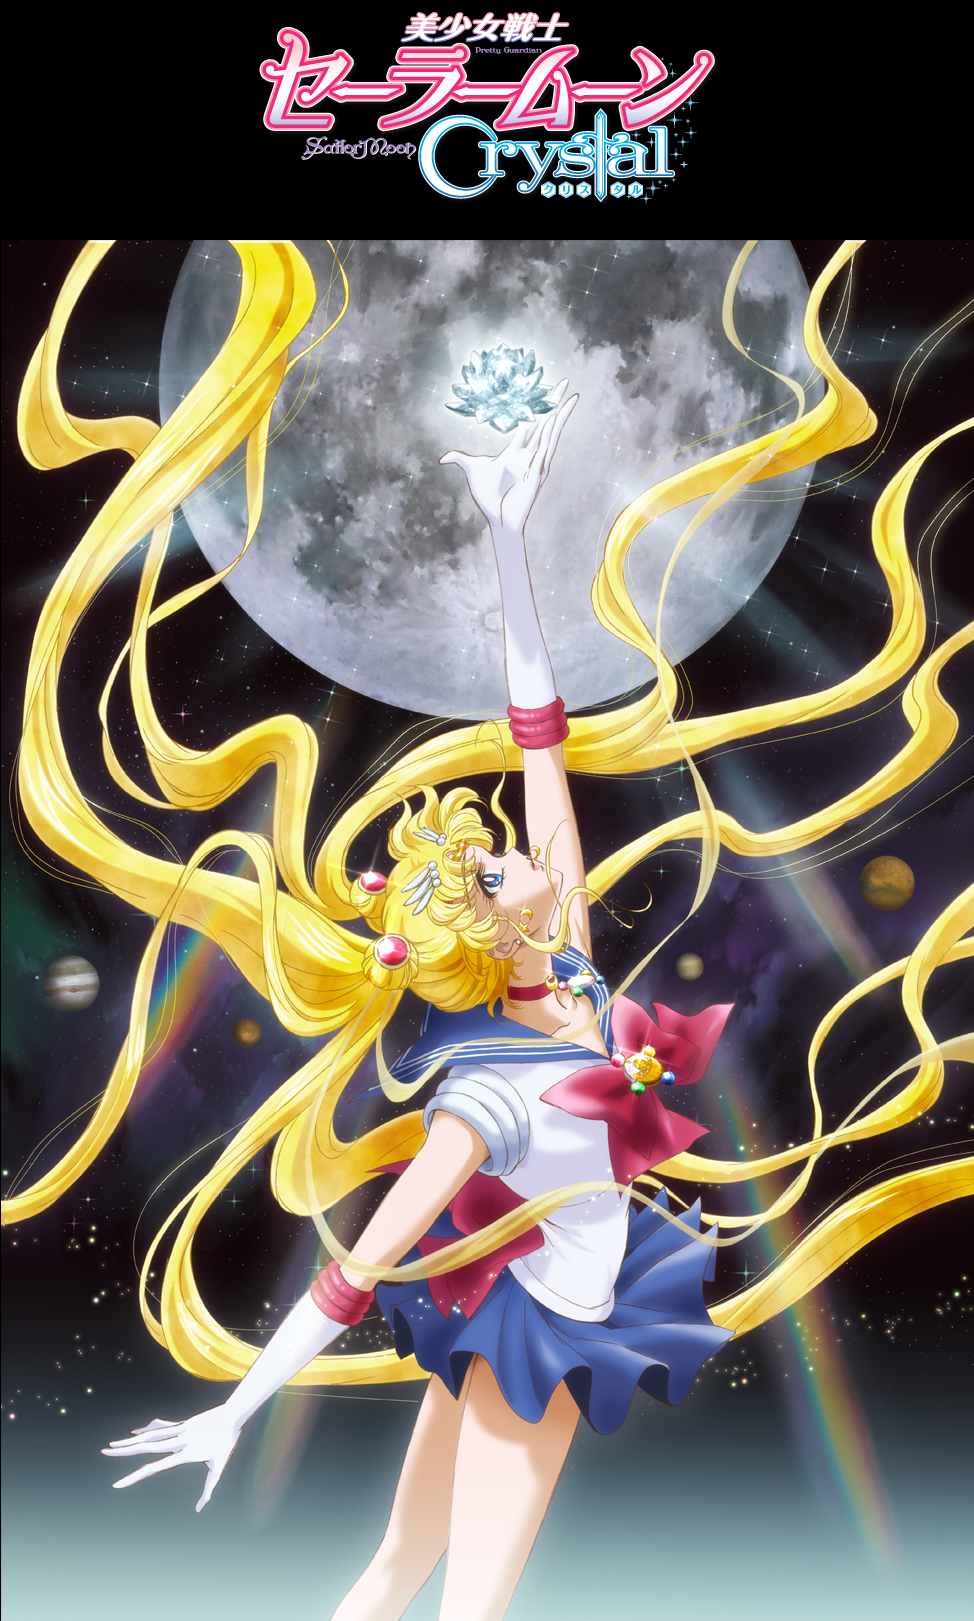 http://img2.wikia.nocookie.net/__cb20140314030755/sailormoon/images/a/a4/Sailor_Moon_Crystal_image.png